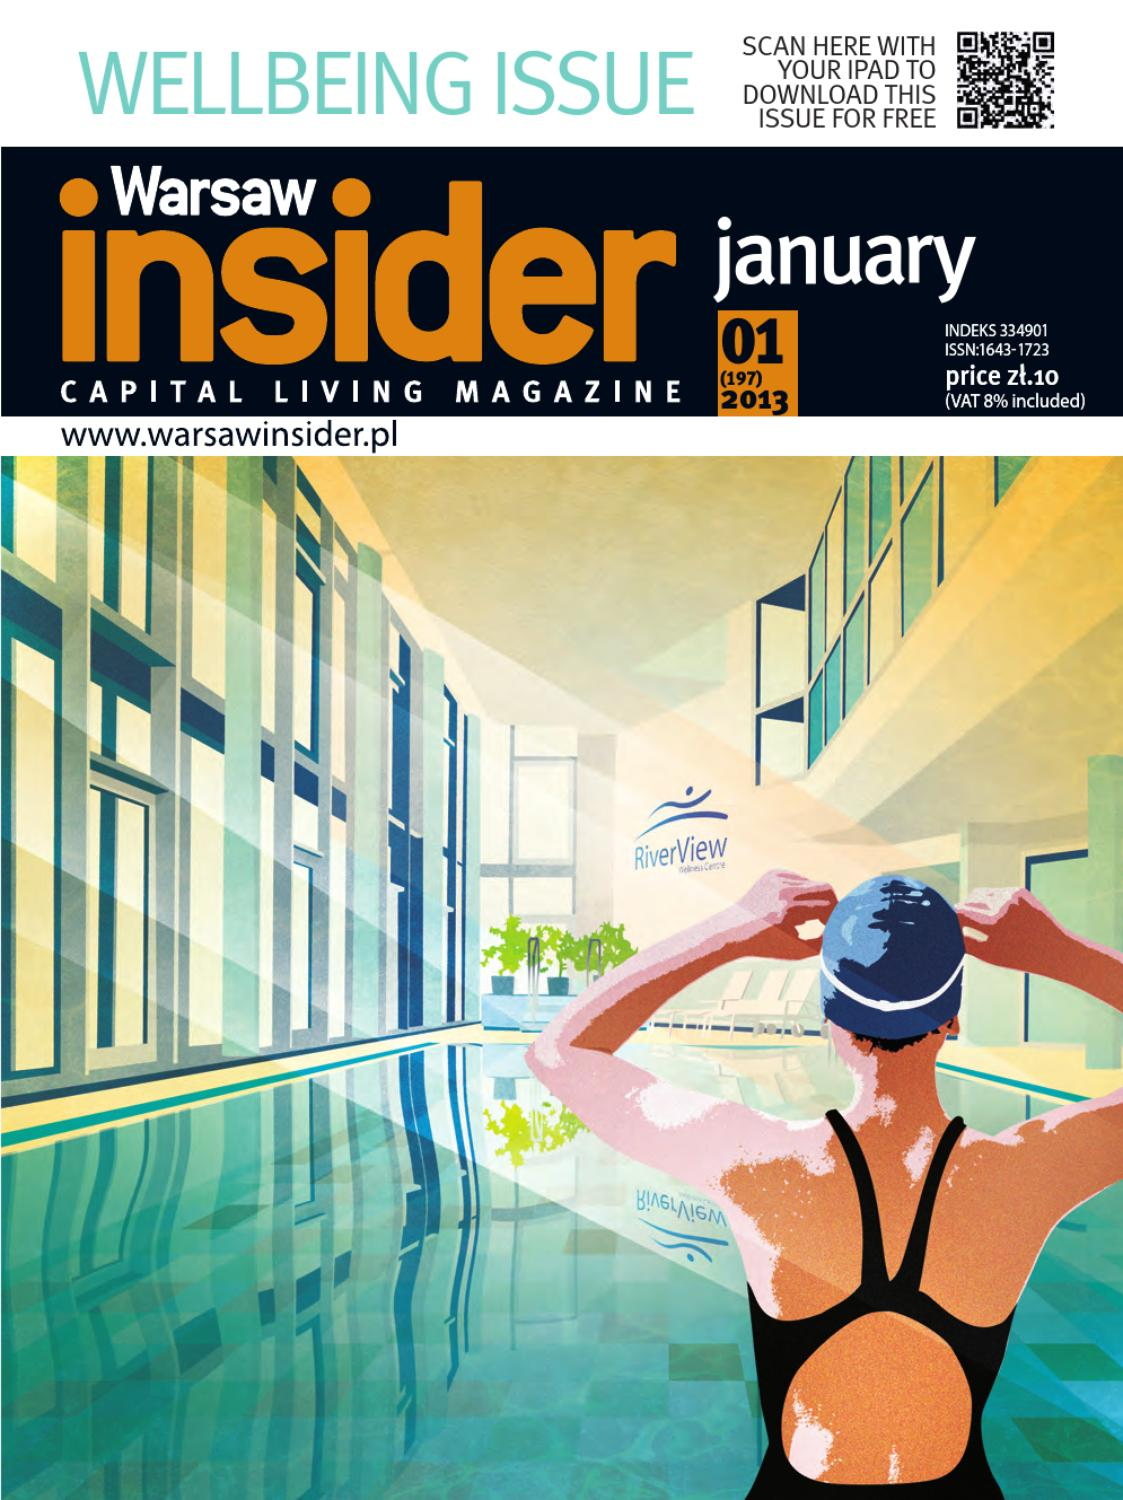 Warsaw Insider January 2013 197 By Valkea Media Pro Issuu